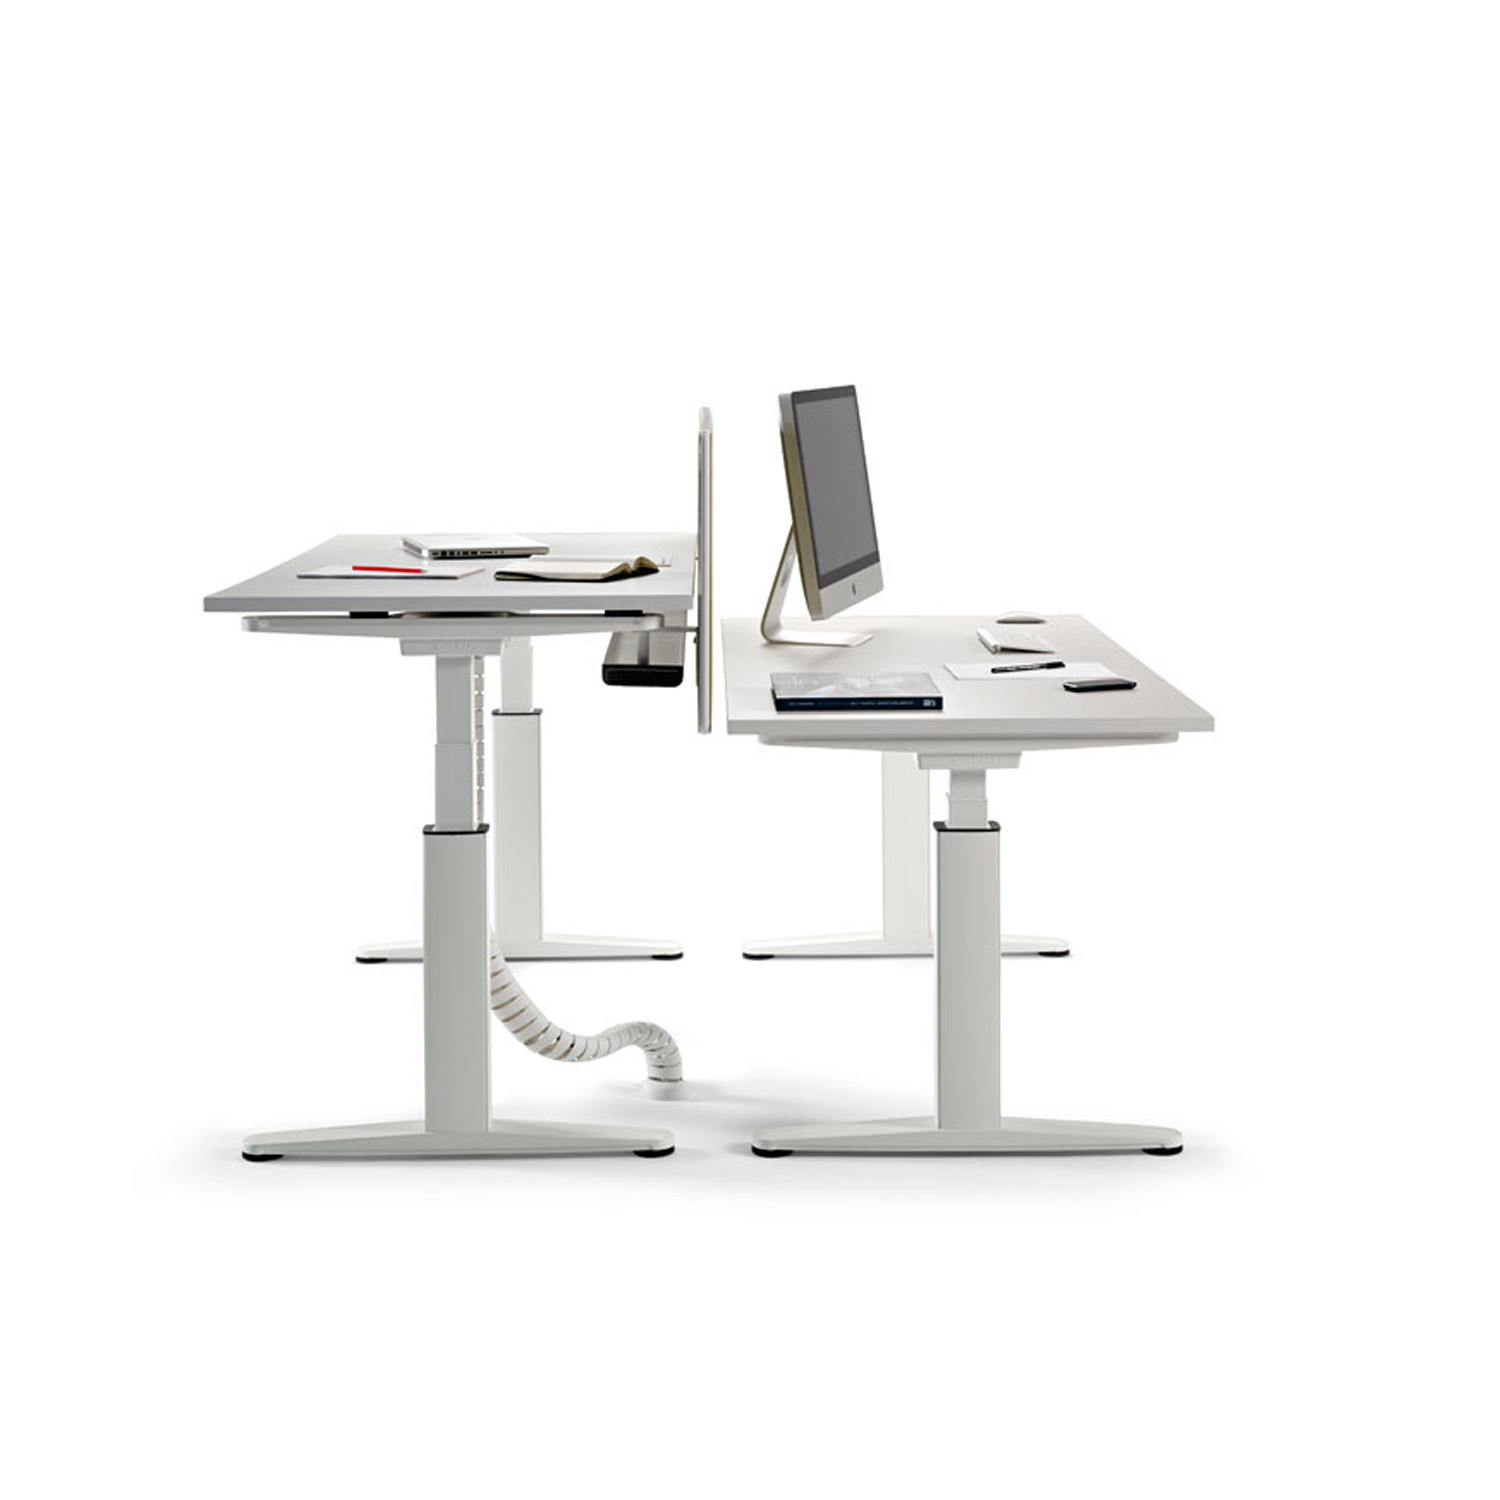 standing vivo work stand shop height adjustable space product desk up rakuten desktop t platform